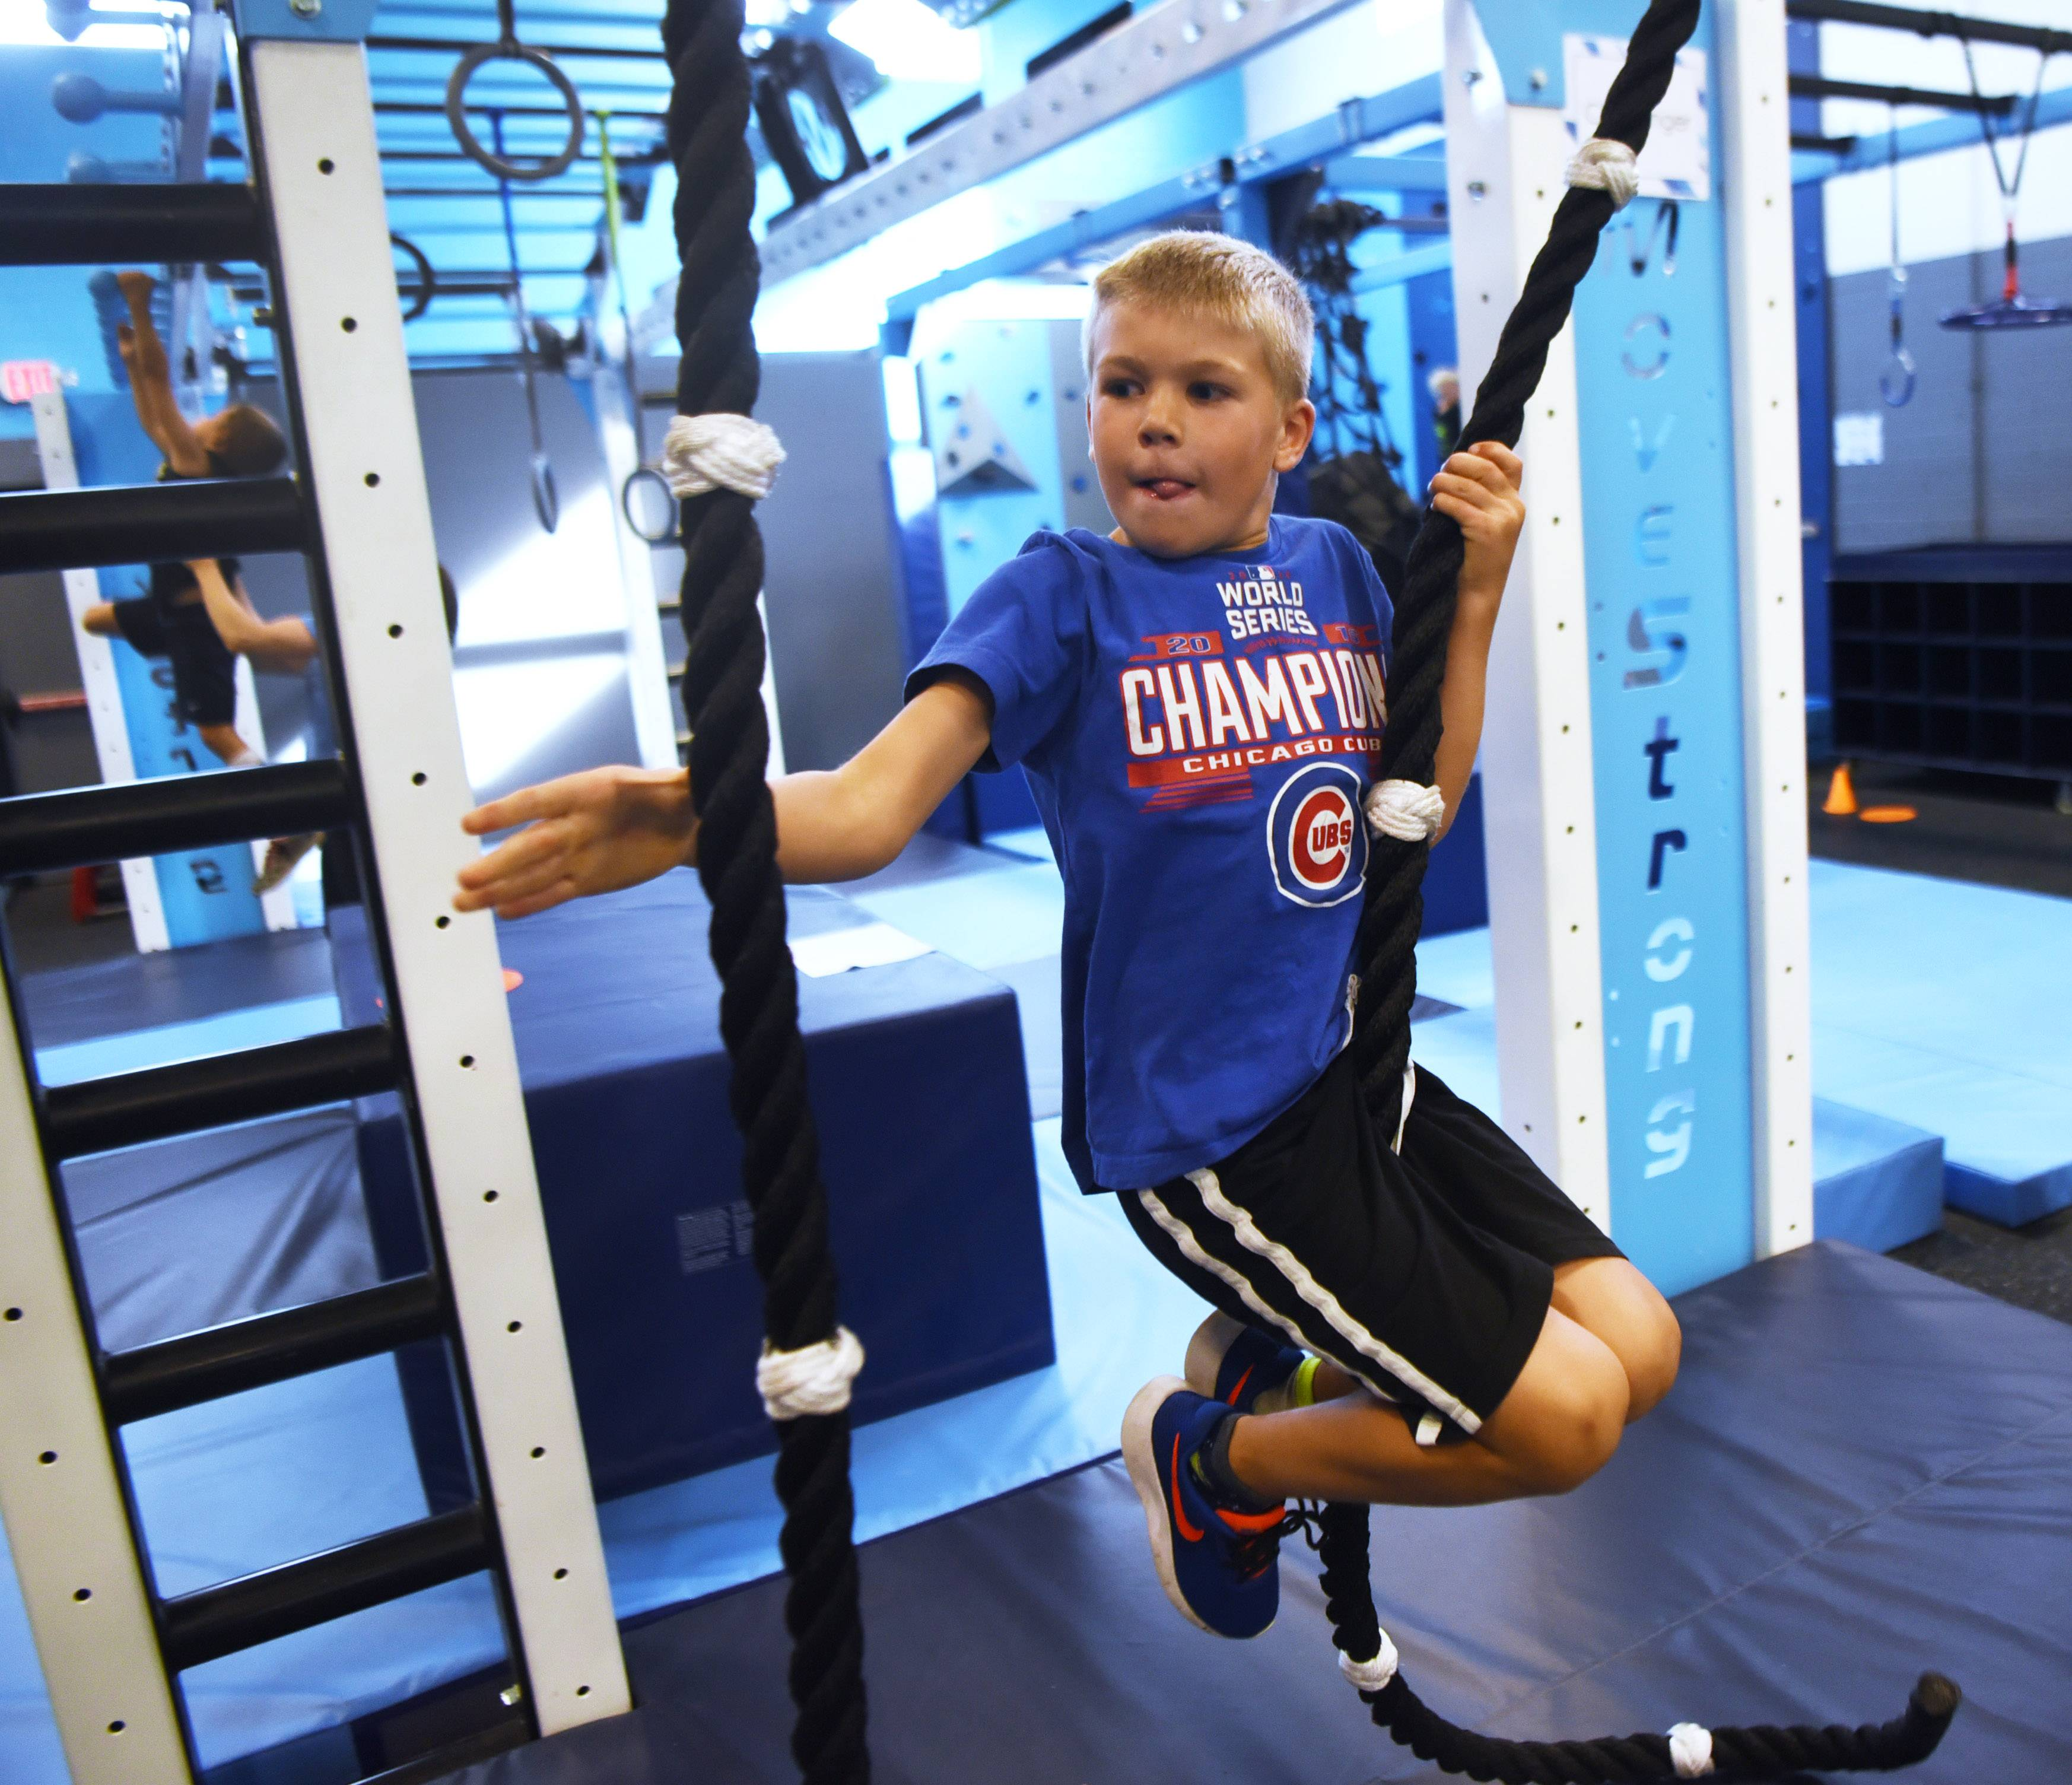 Duncan Phipps, 7, swings from rope-to-rope at Windy City Ninjas in Elmhurst. The 12,000-square-foot facility includes gym space, two party rooms and a viewing mezzanine for parents to watch their children.